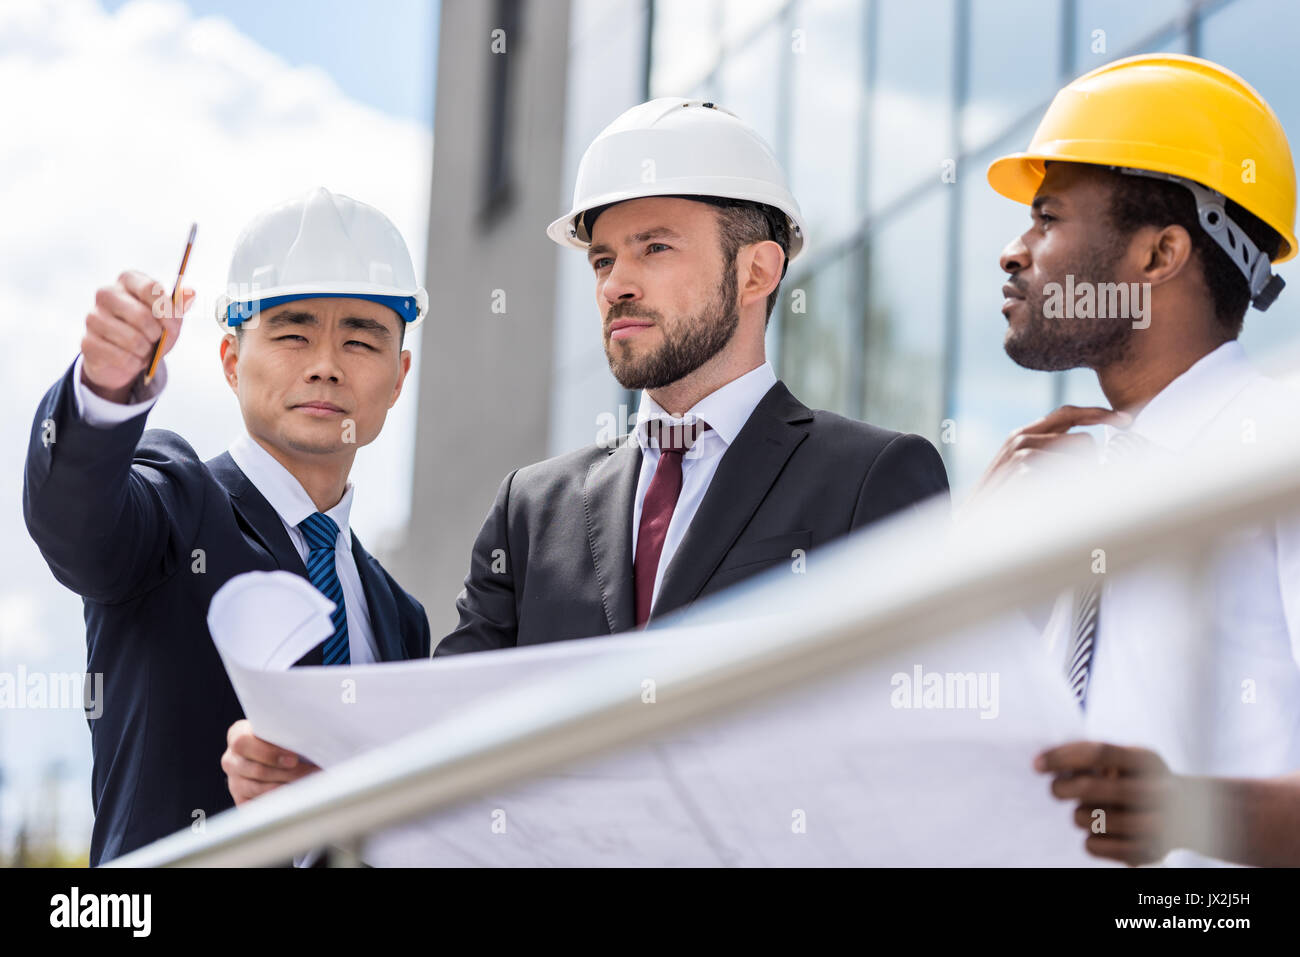 Professional architects in hardhats working with blueprint outside modern building - Stock Image